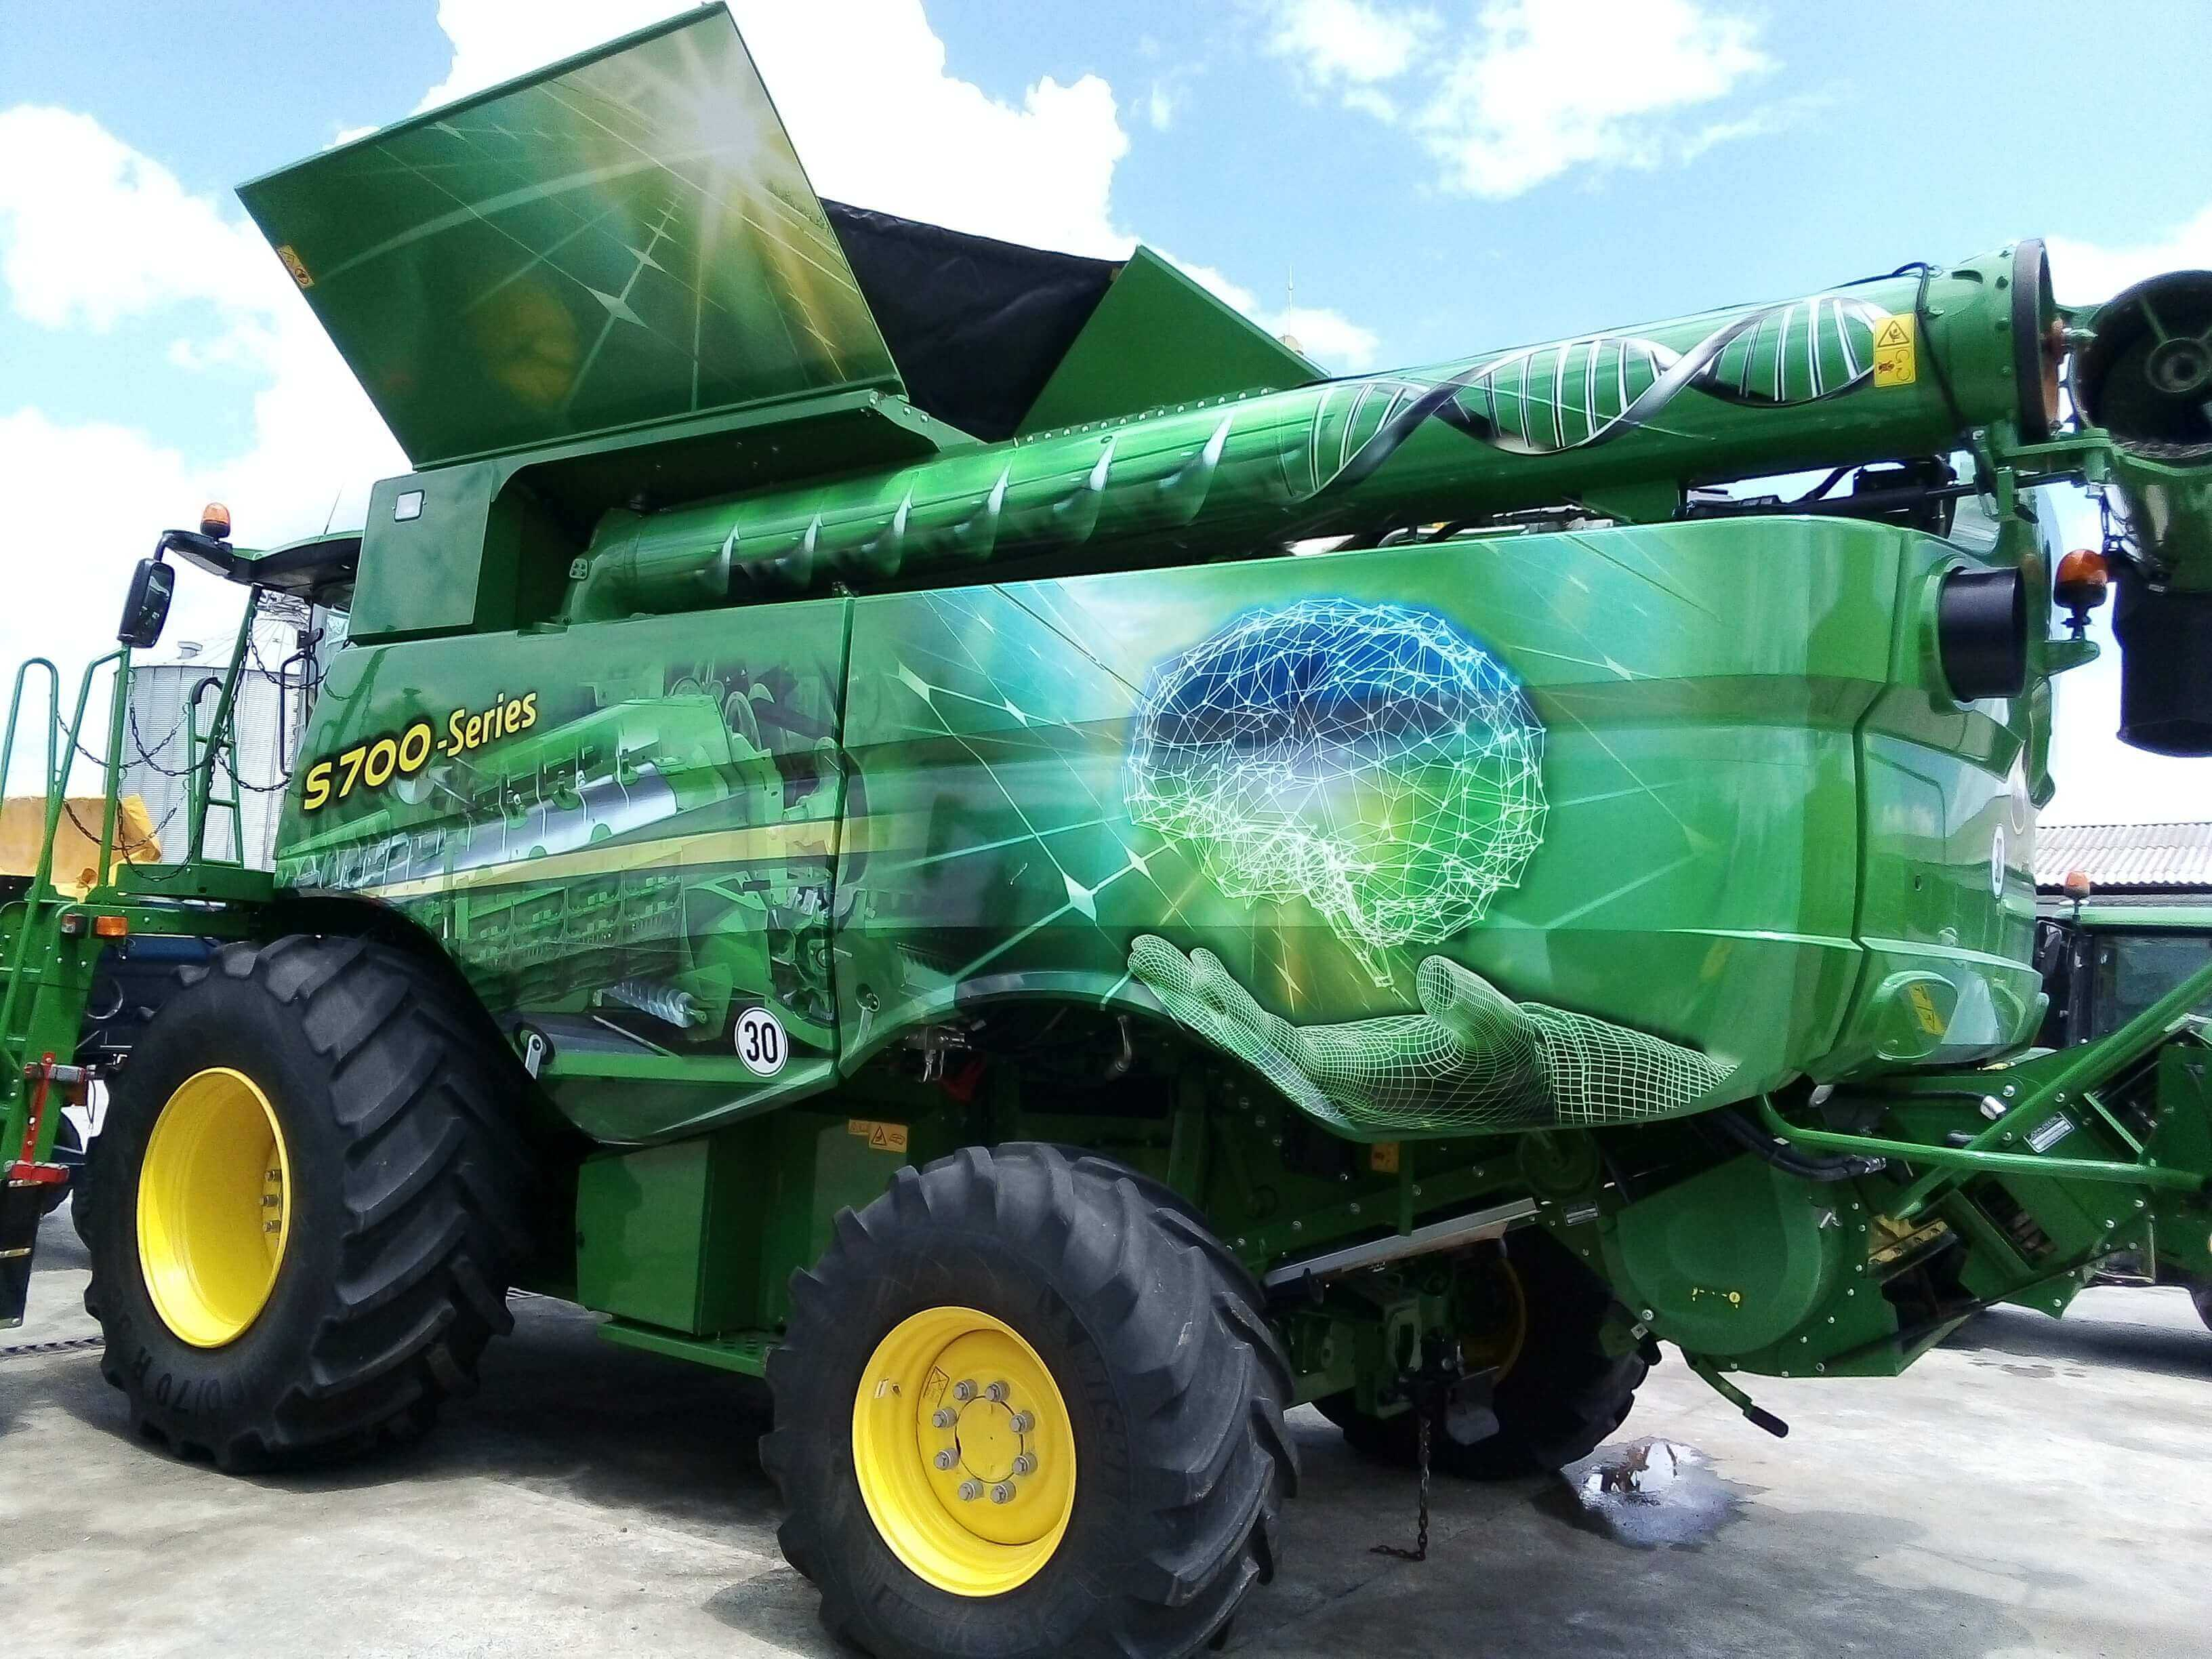 Wrapping a combine harvester with 3M self-adhesive film